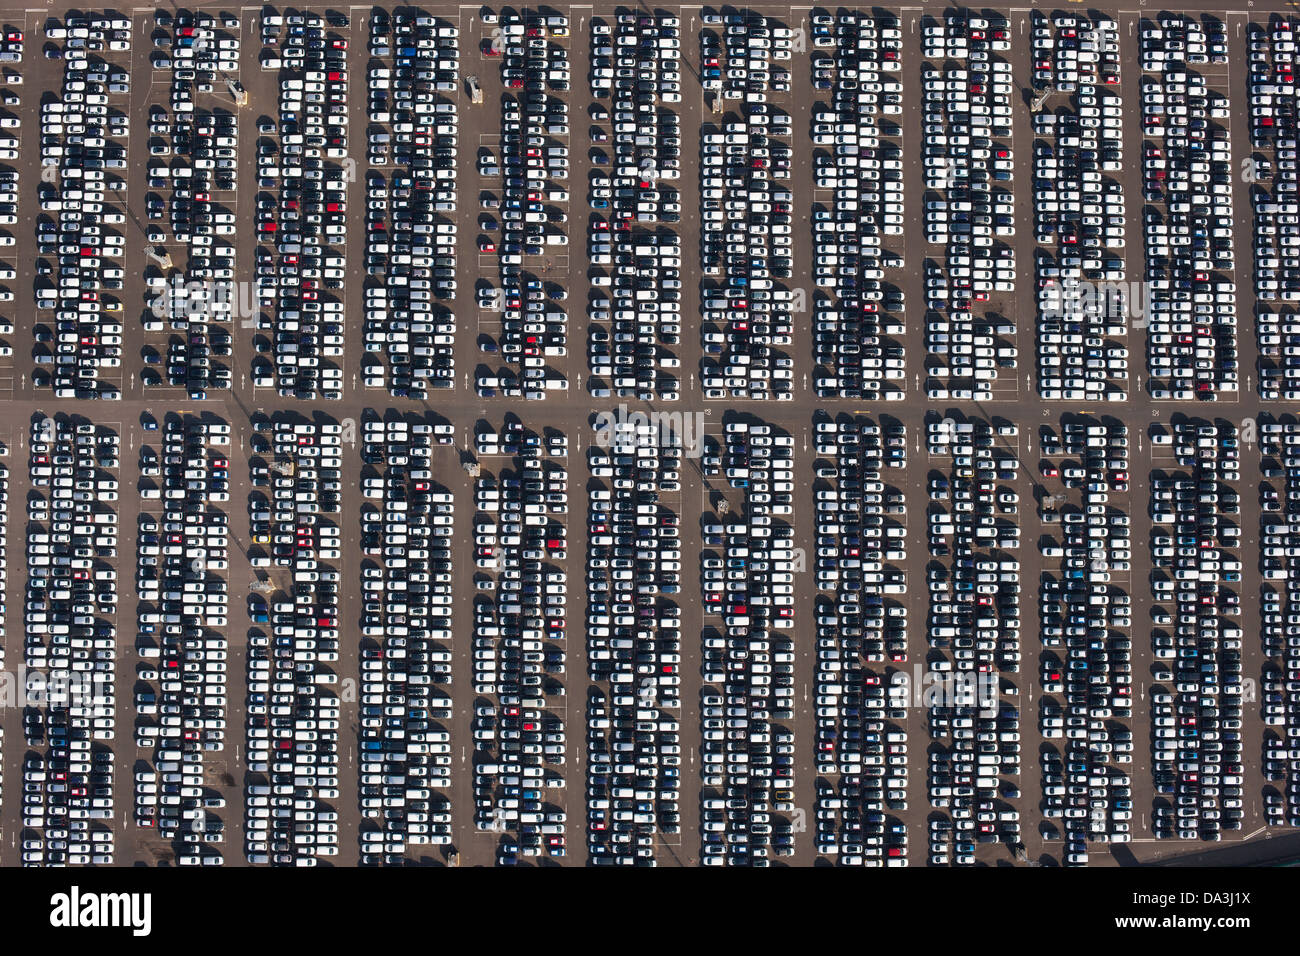 CAR DEPOSITORY (vertical aerial view). Sheerness, Isle of Sheppey, Kent, England, Great Britain, United Kingdom. - Stock Image